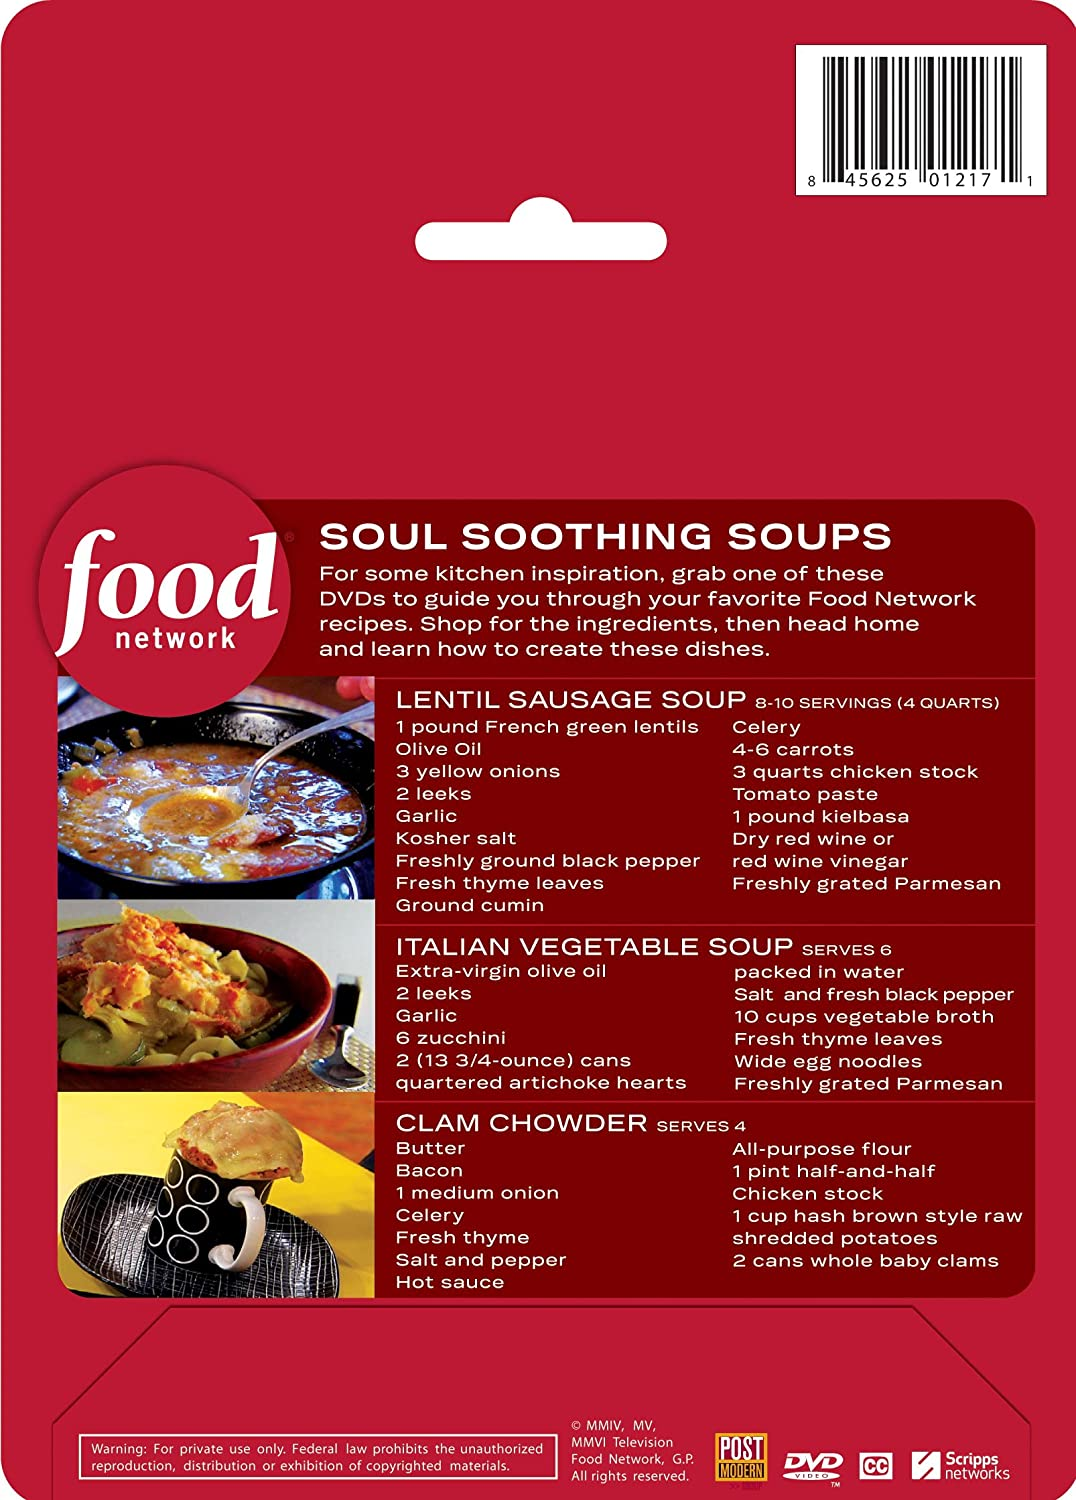 Amazon food network meals on dvd shop watch cook soul amazon food network meals on dvd shop watch cook soul soothing soups rachael ray ina garten giada de laurentiis food network movies tv forumfinder Choice Image